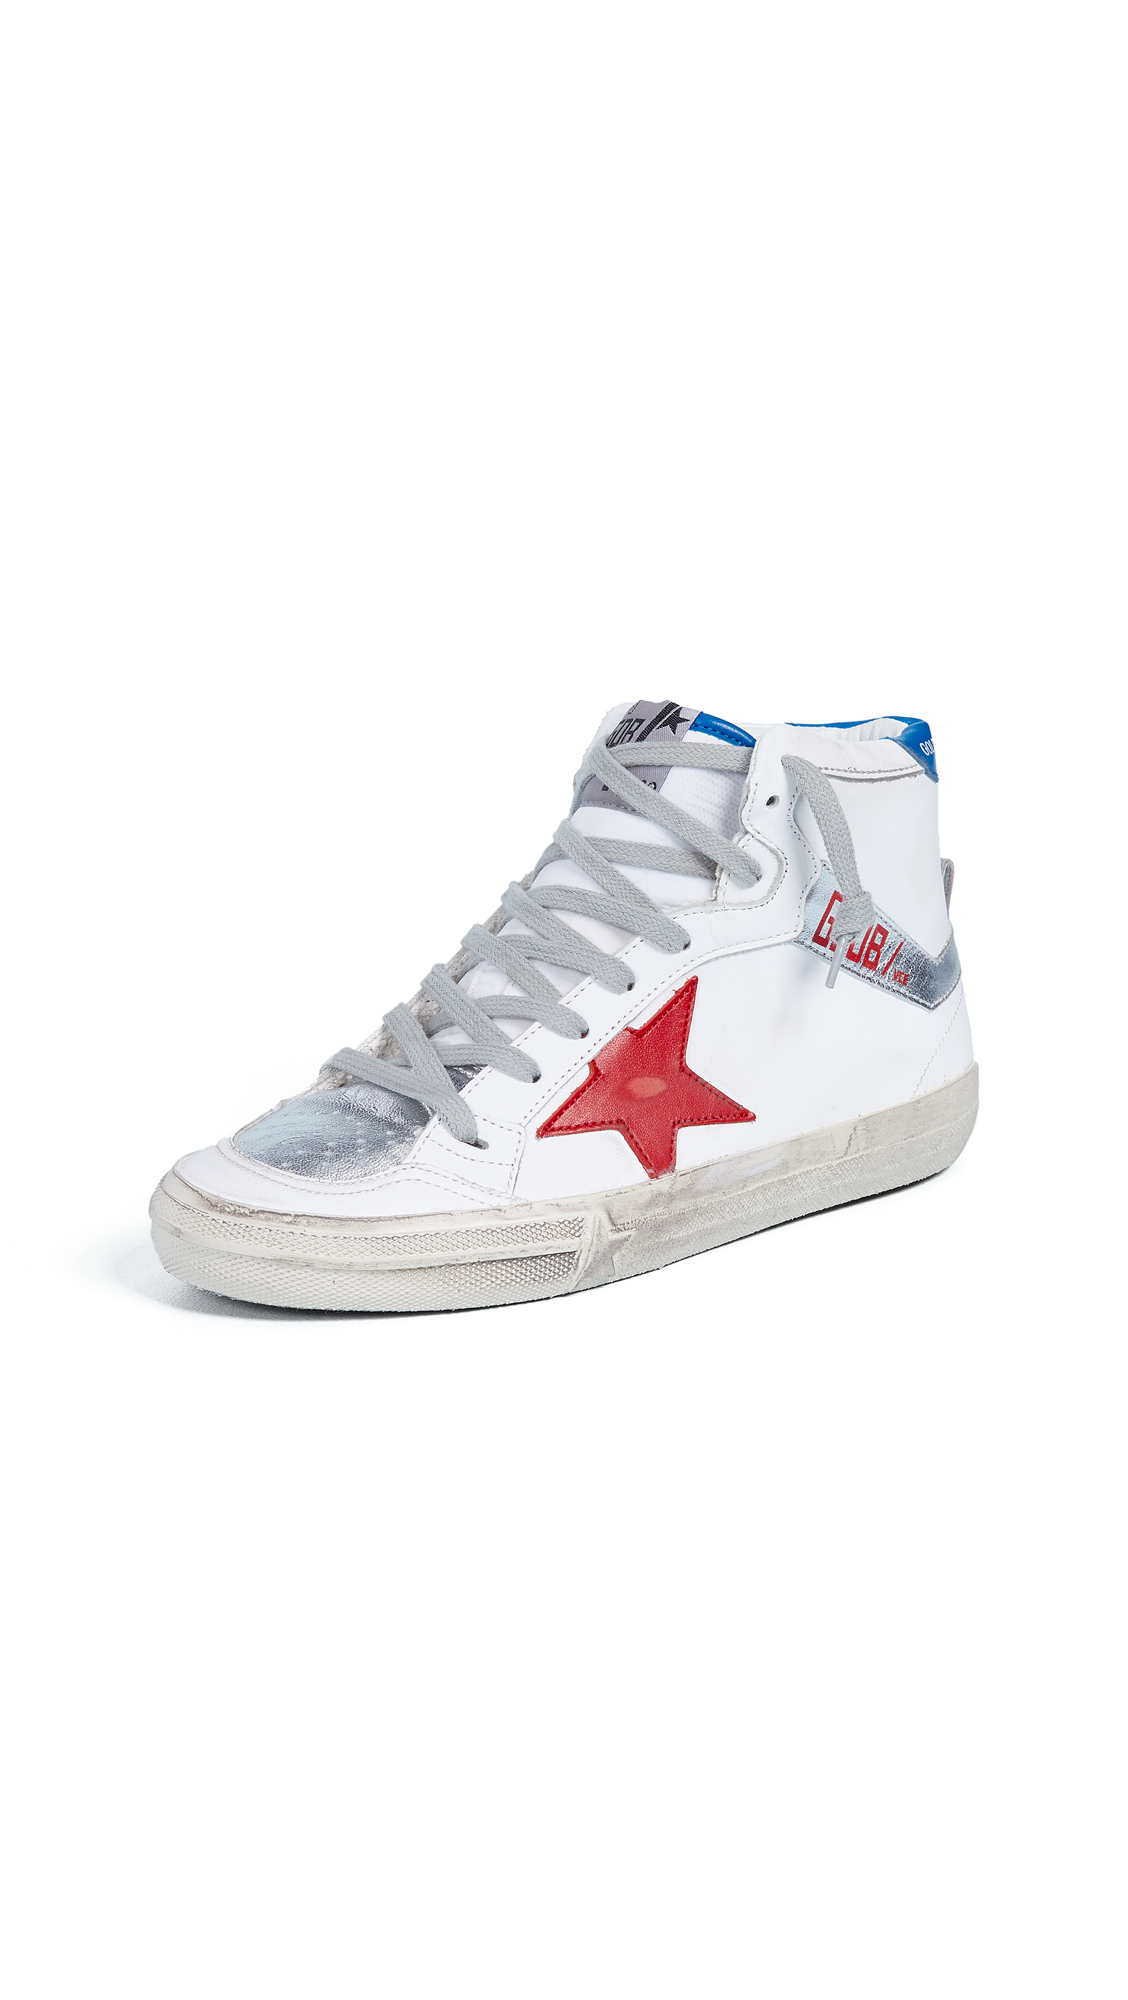 Golden Goose 2.12 Sneakers - White/Red